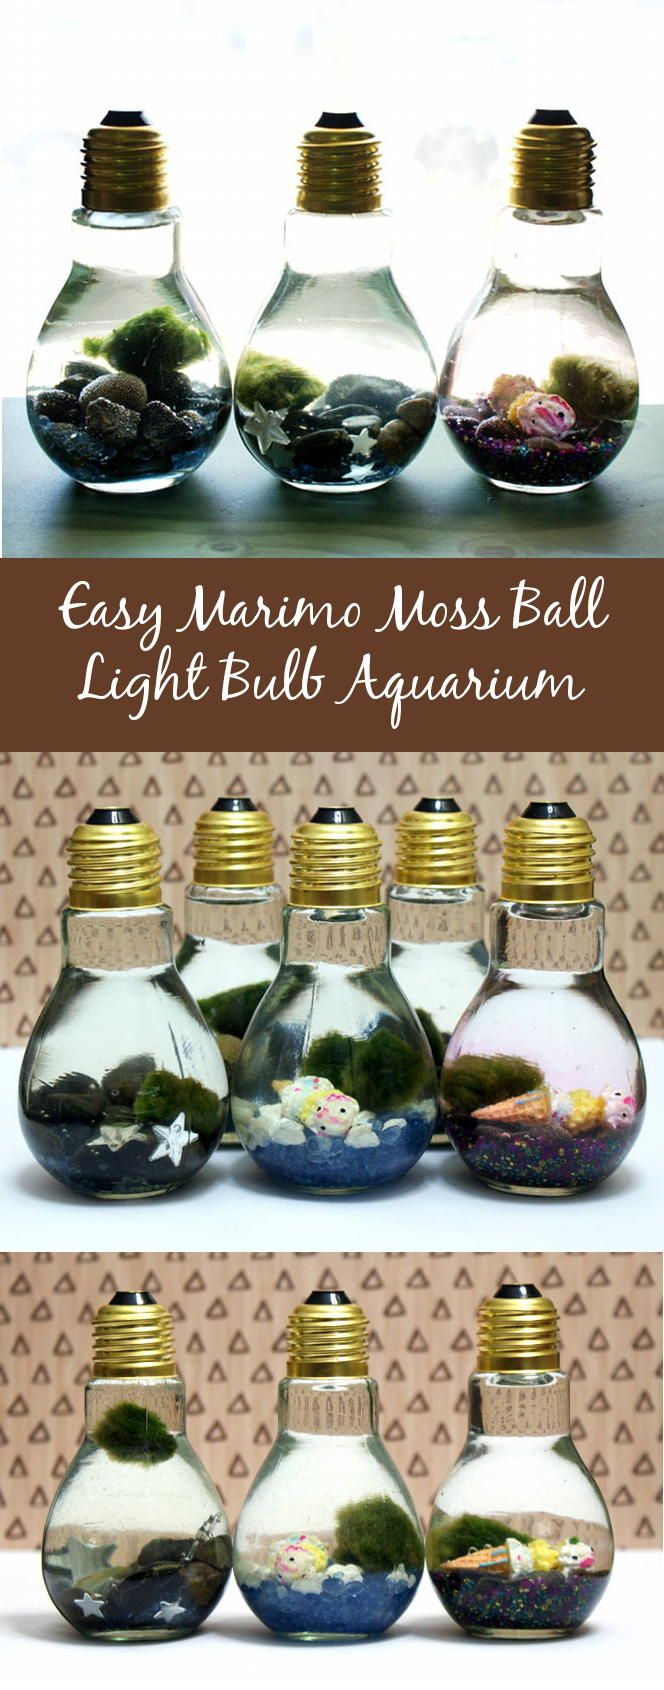 Looking for craft ideas to make and sell online or at farmer's markets this spring and summer? These easy marimo moss ball light ball aquariums are super simple to make and are currently trending! #craftstomakeandsell